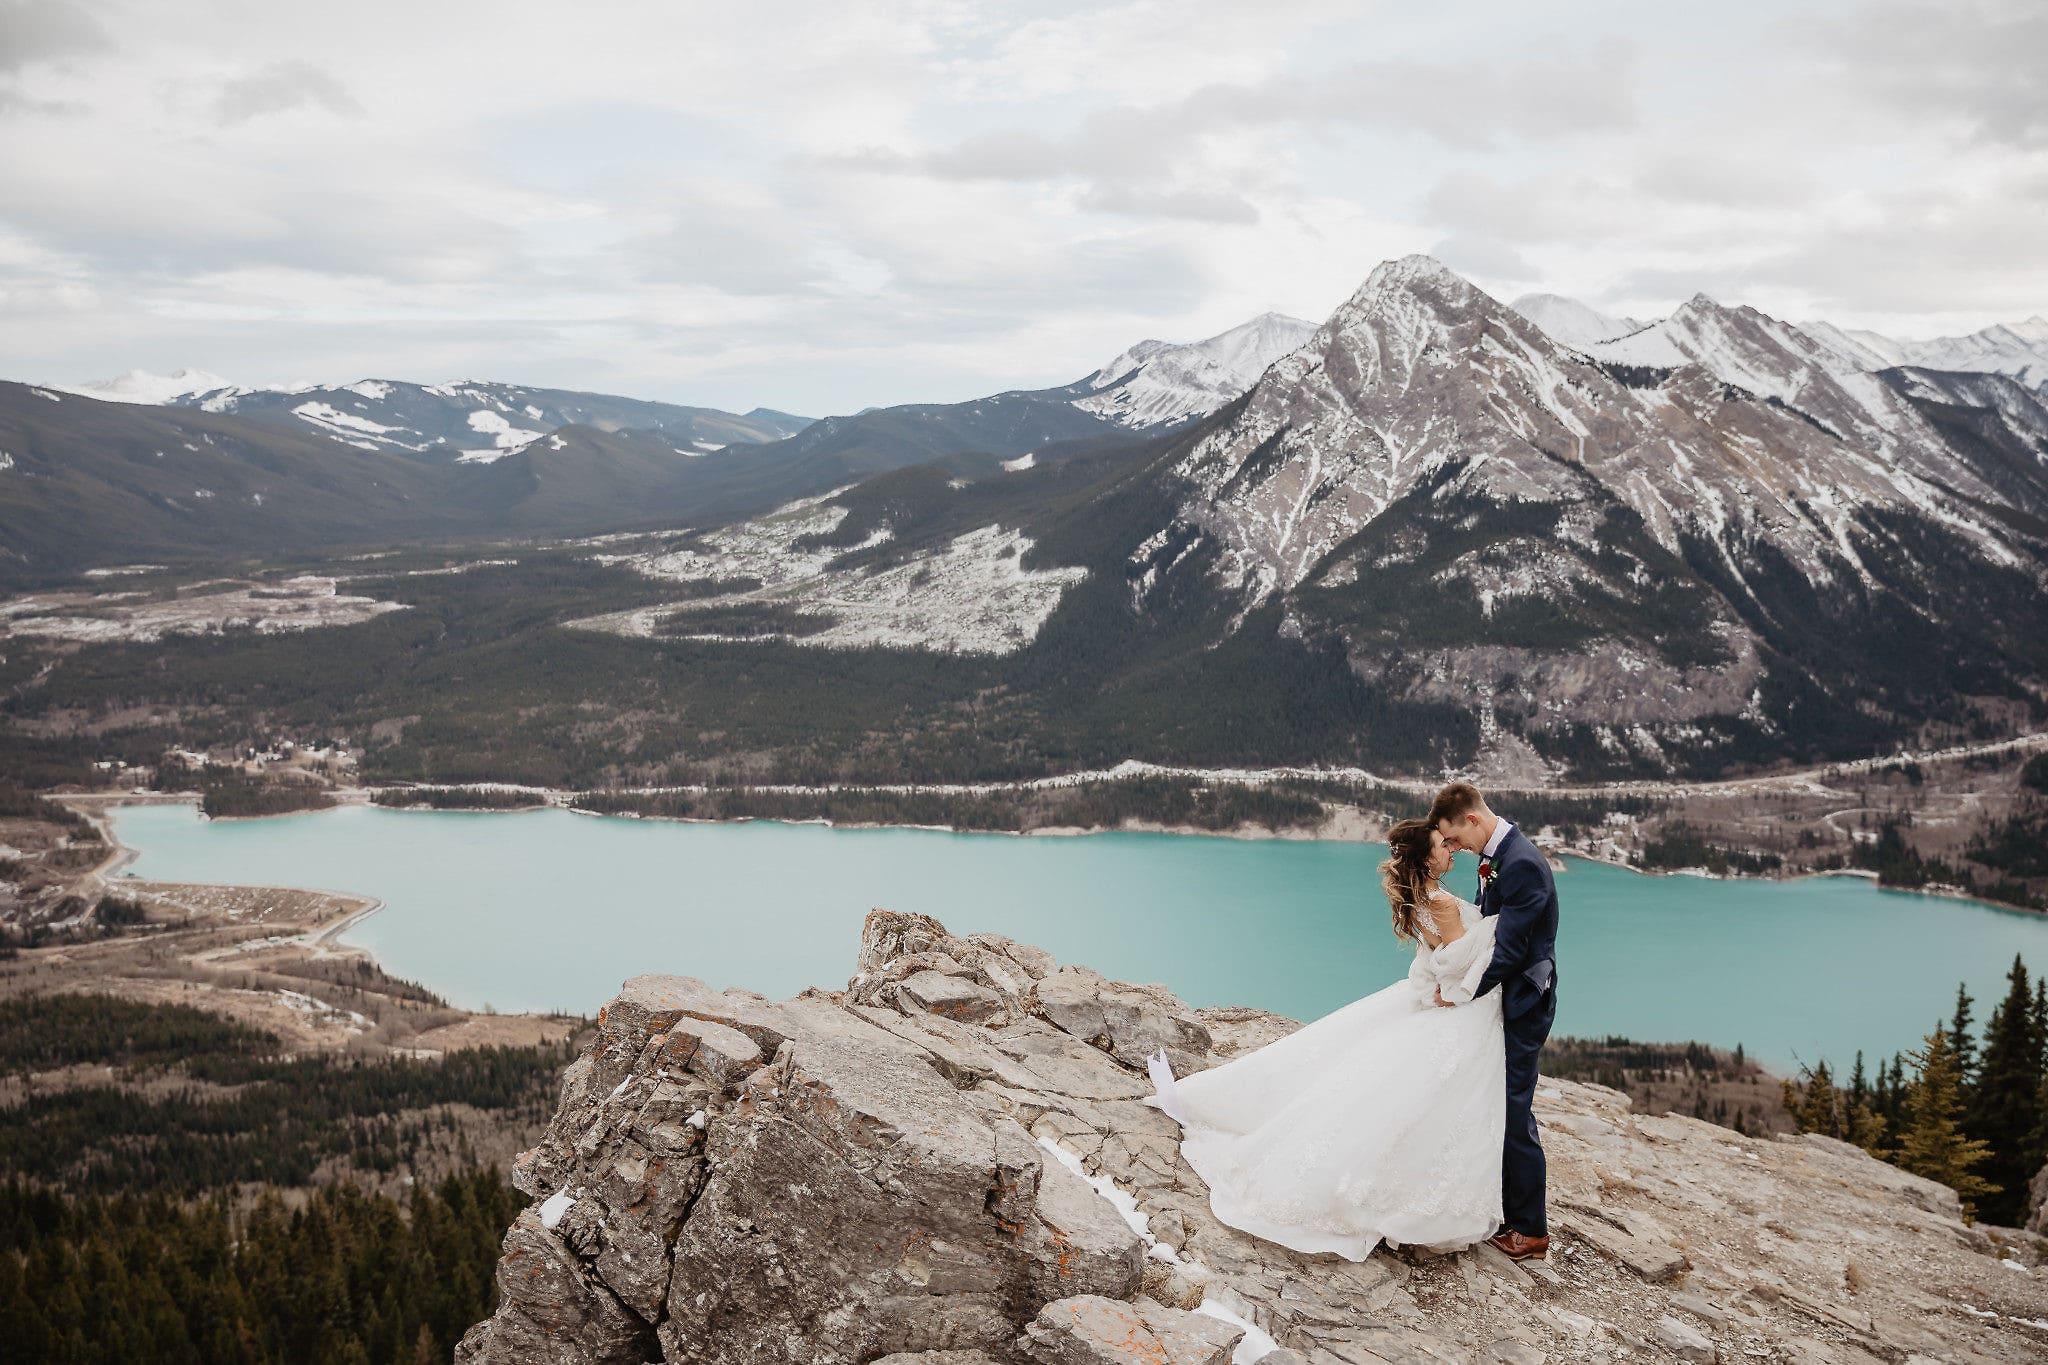 A couple on their mountain hiking elopement in Kananaskis, Alberta, Canadian Rockies. Captured by Banff wedding and elopement photographers. The couples are standing on the edge of a cliff surrounded by mountain range with turquoise coloured alpine lake behind them on a windy sunny day.